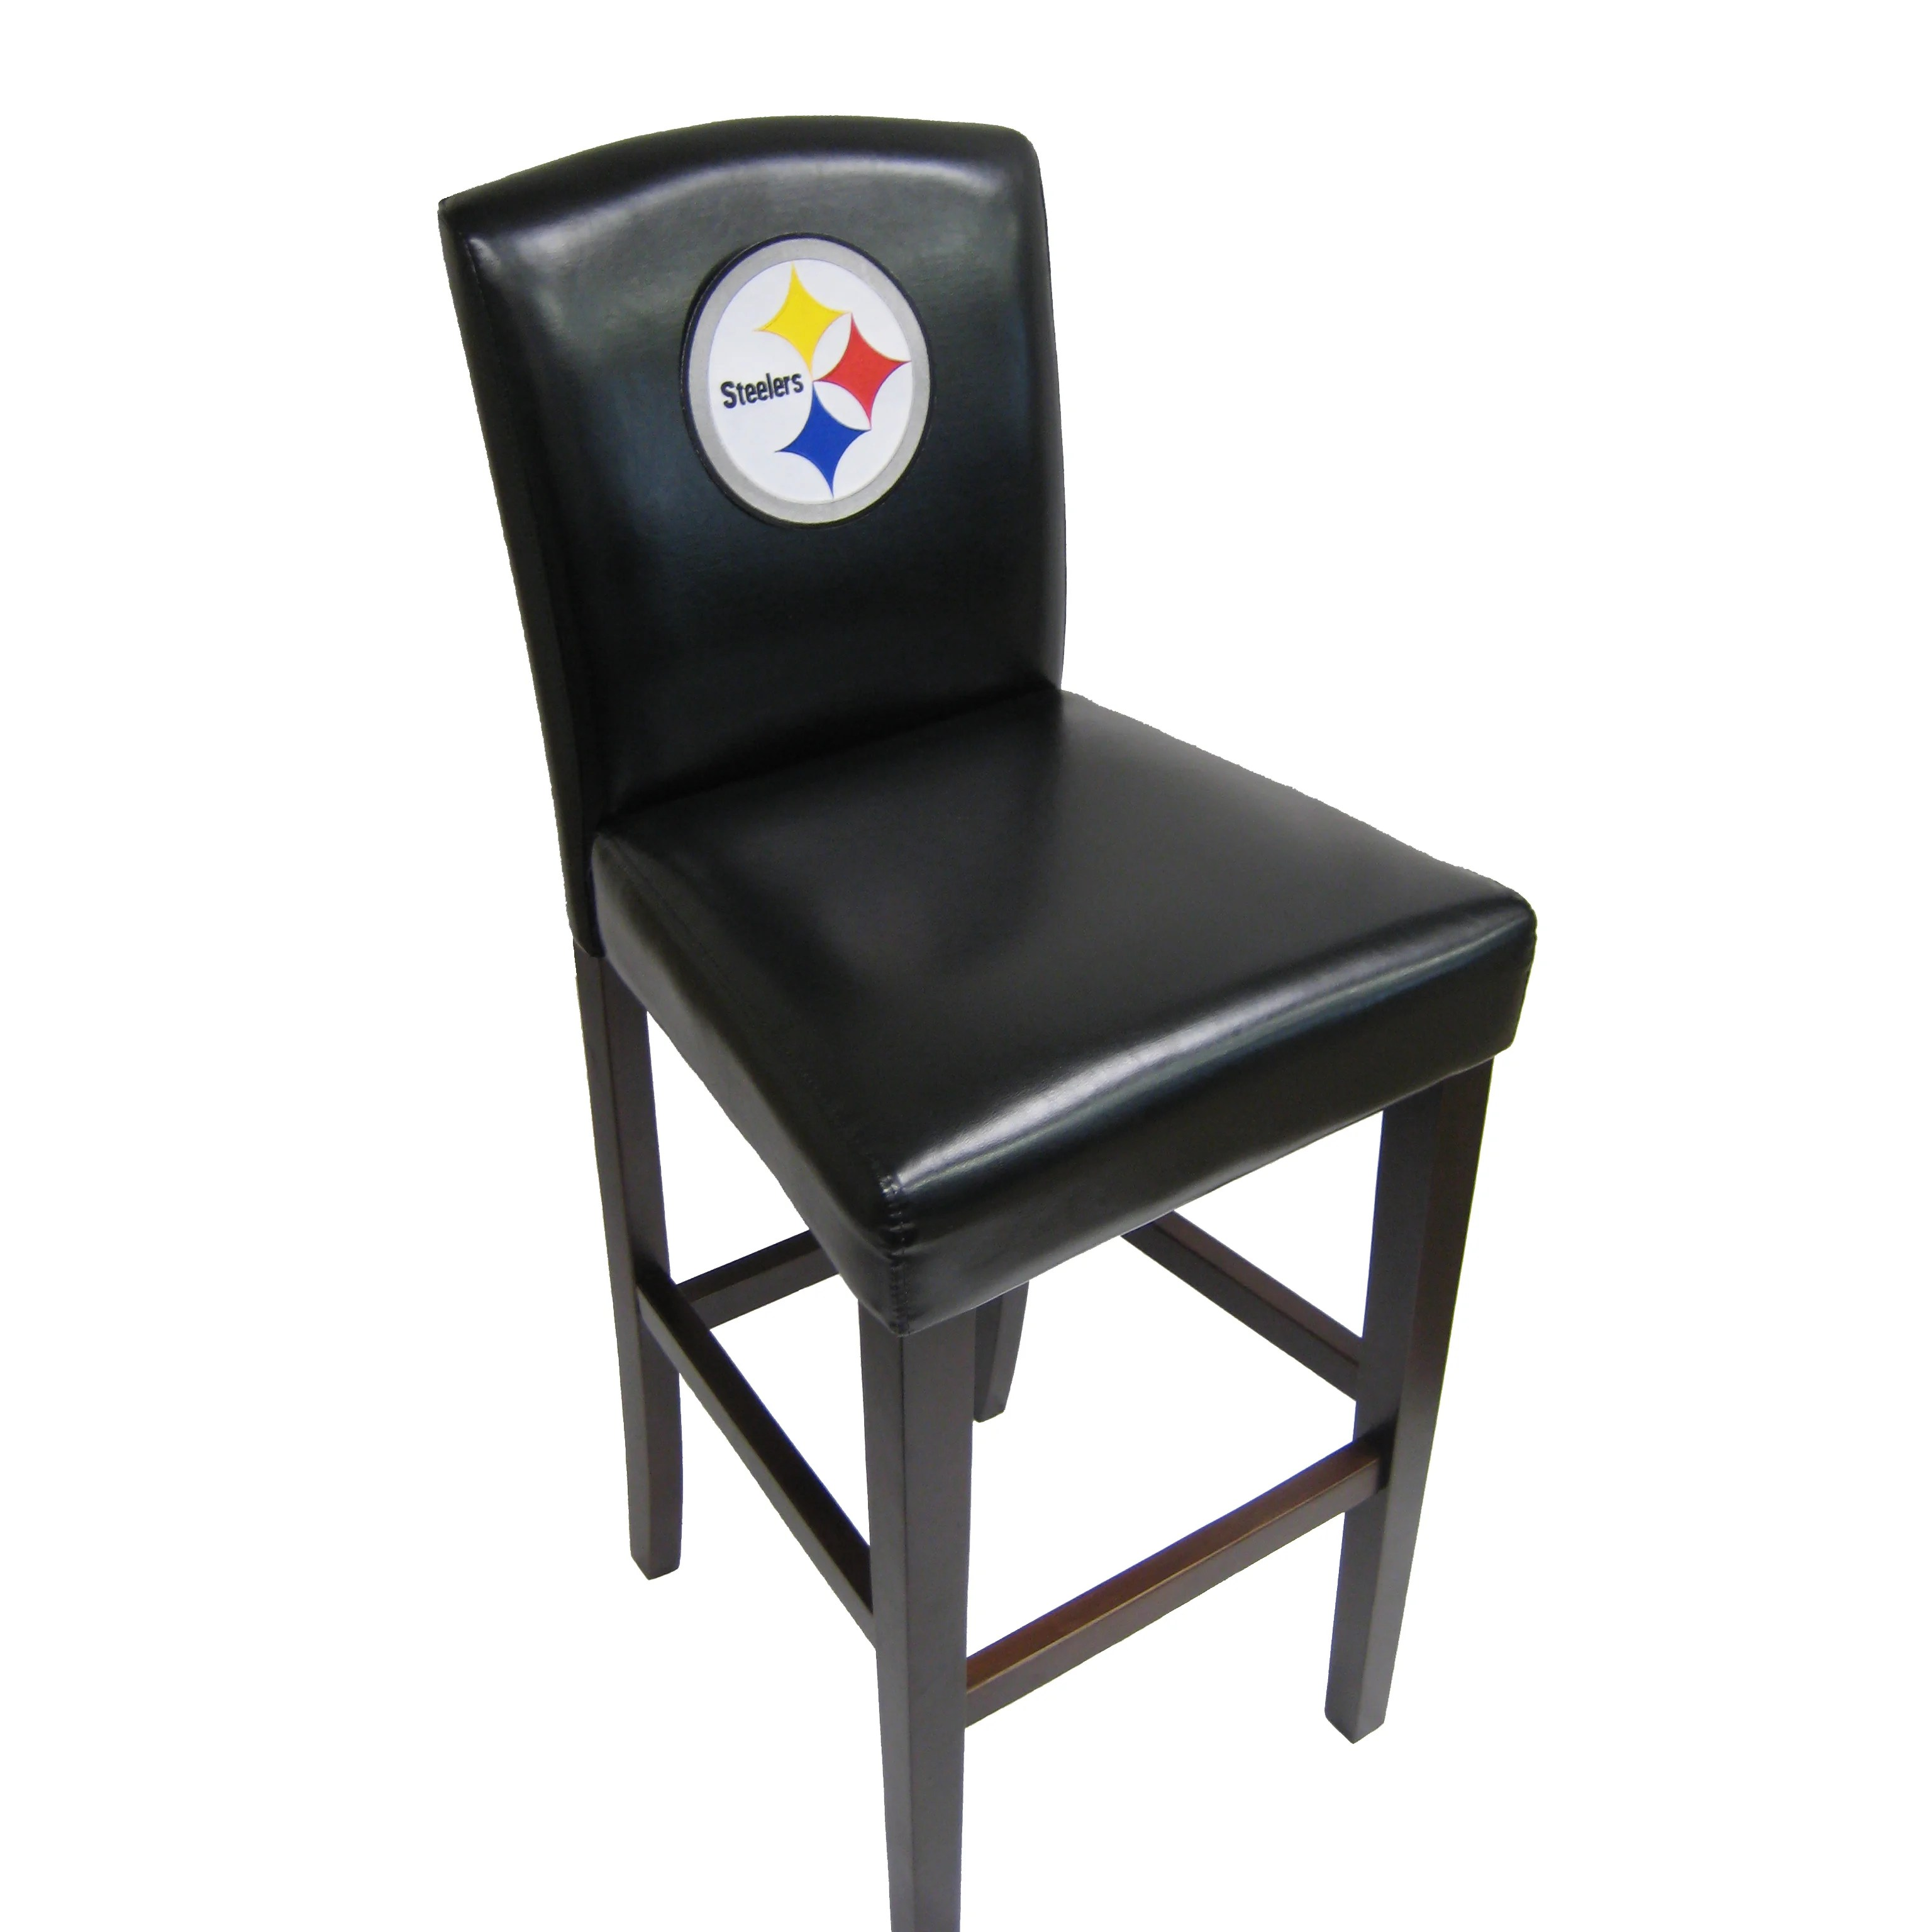 Pittsburgh Steelers Chair Imperial Nfl Bar Stool With Cushion And Reviews Wayfair Ca